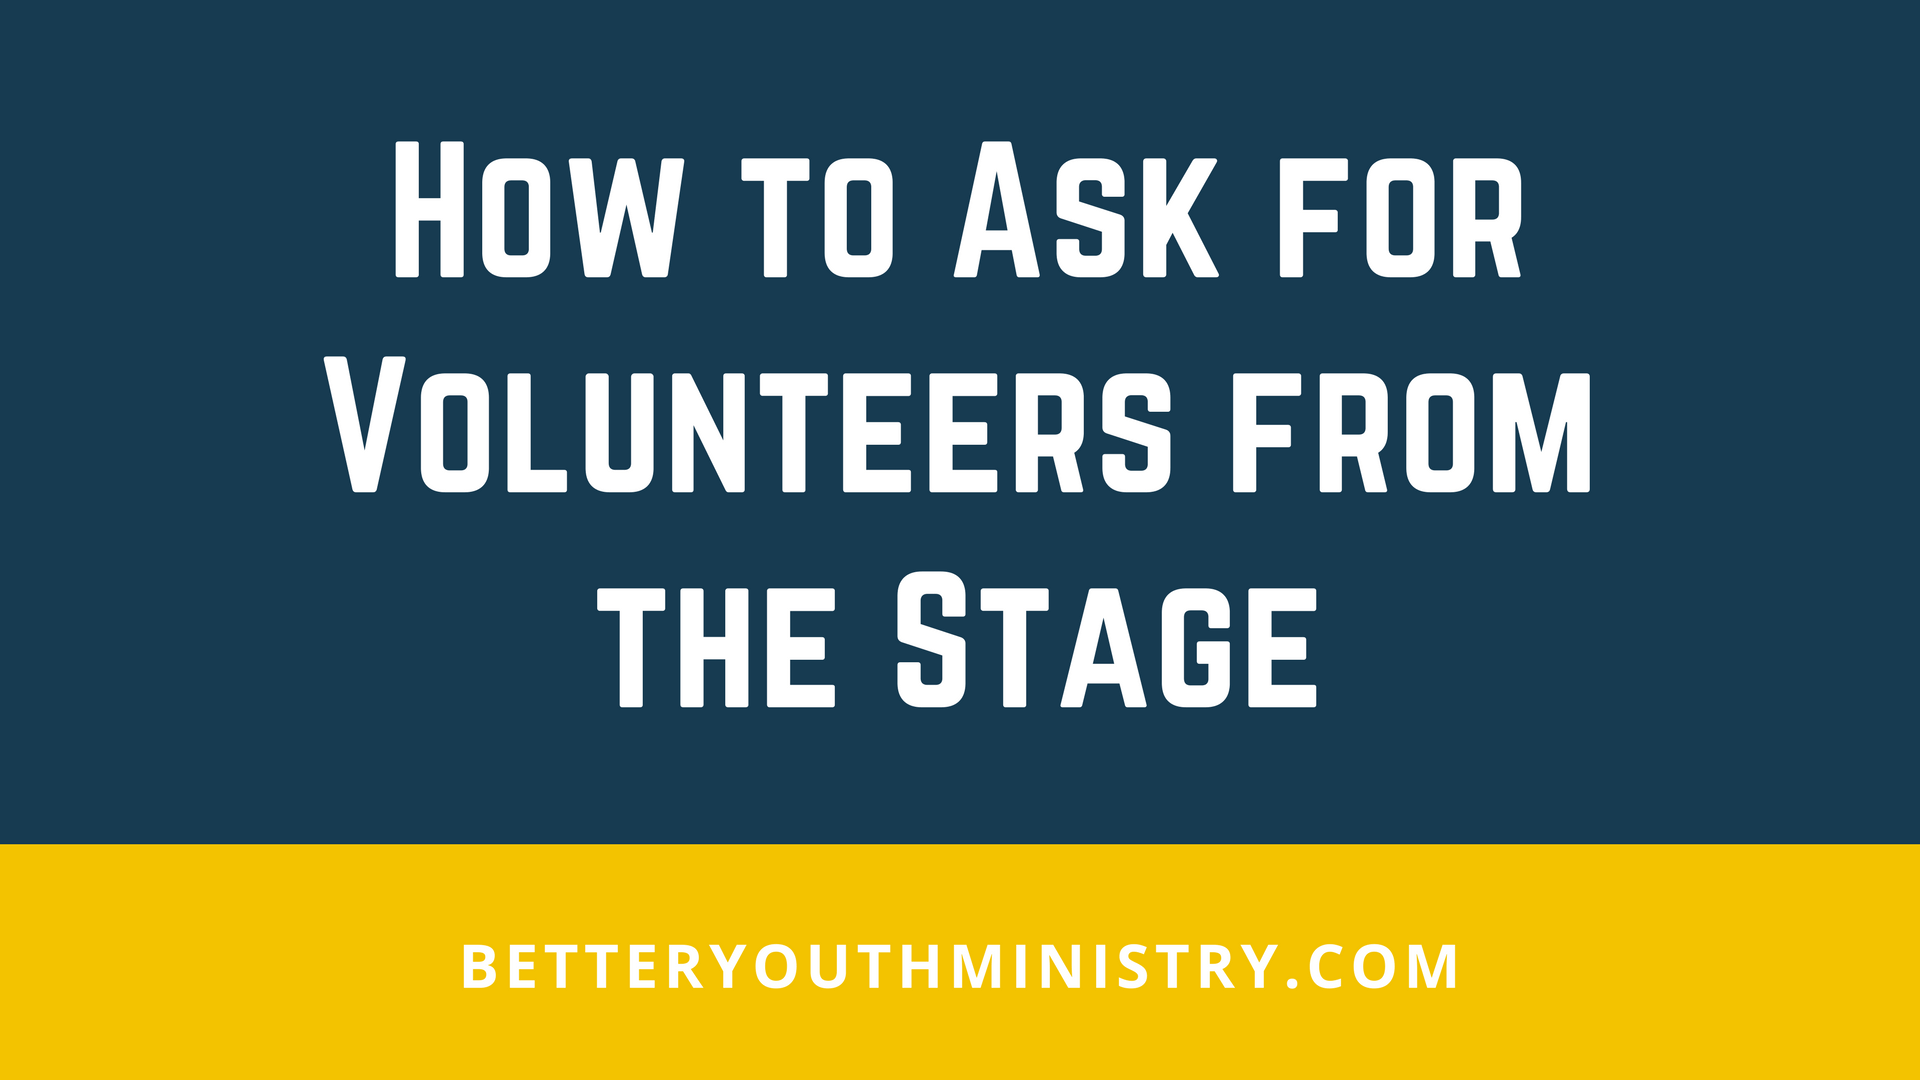 How to Ask for Volunteers from the Stage